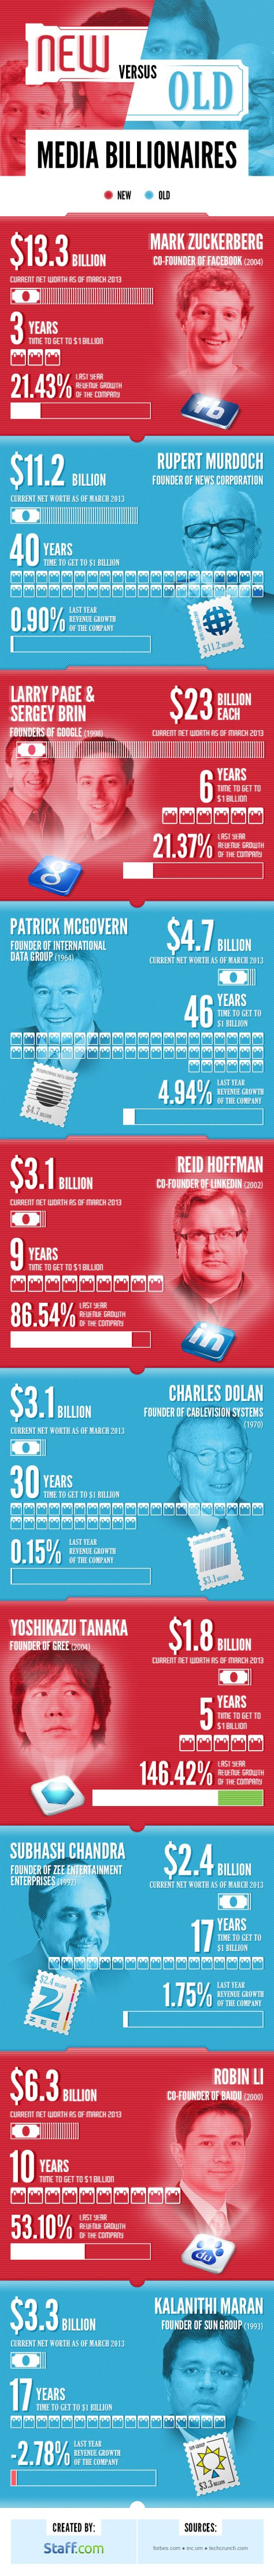 TD-Infograph_New-vs-Old-Billionaires